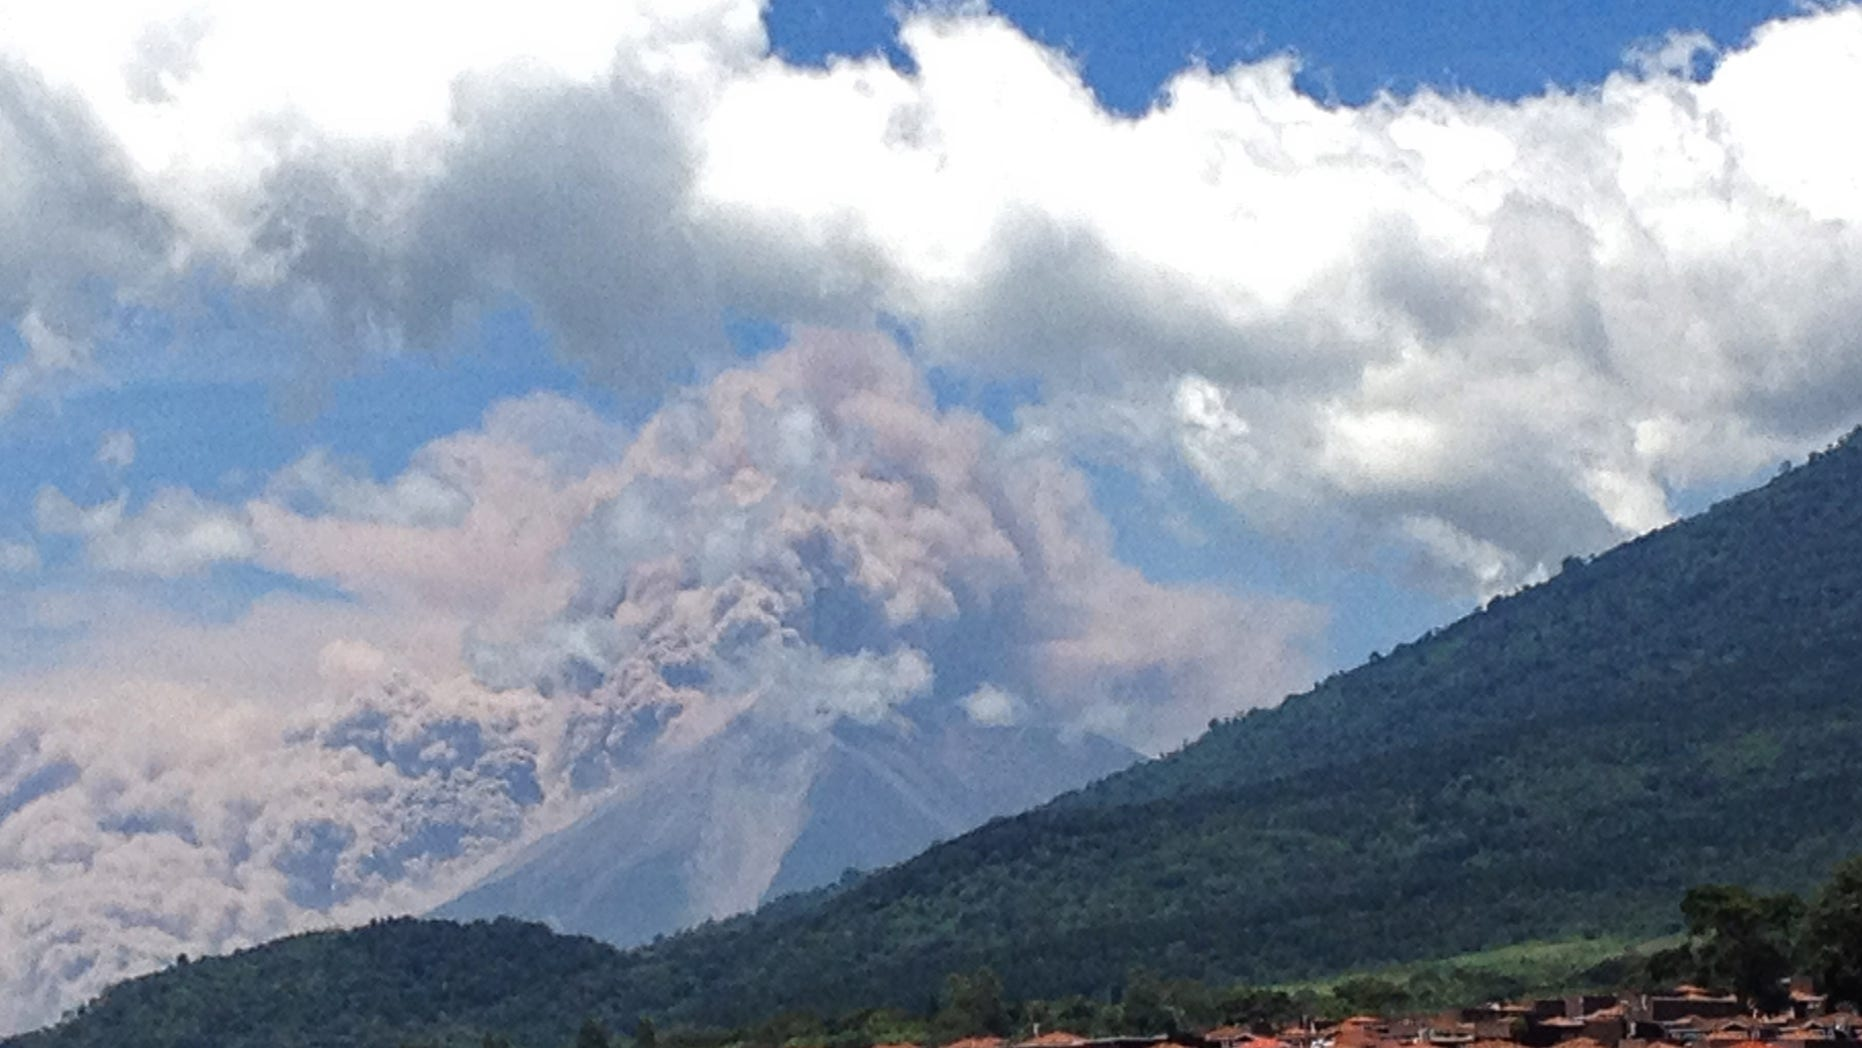 Sept. 13, 2012: In this image with a cell phone plumes of smoke rise from the Volcan de Fuego or Volcano of Fire spews ash seen from Palin, south of Guatemala City.